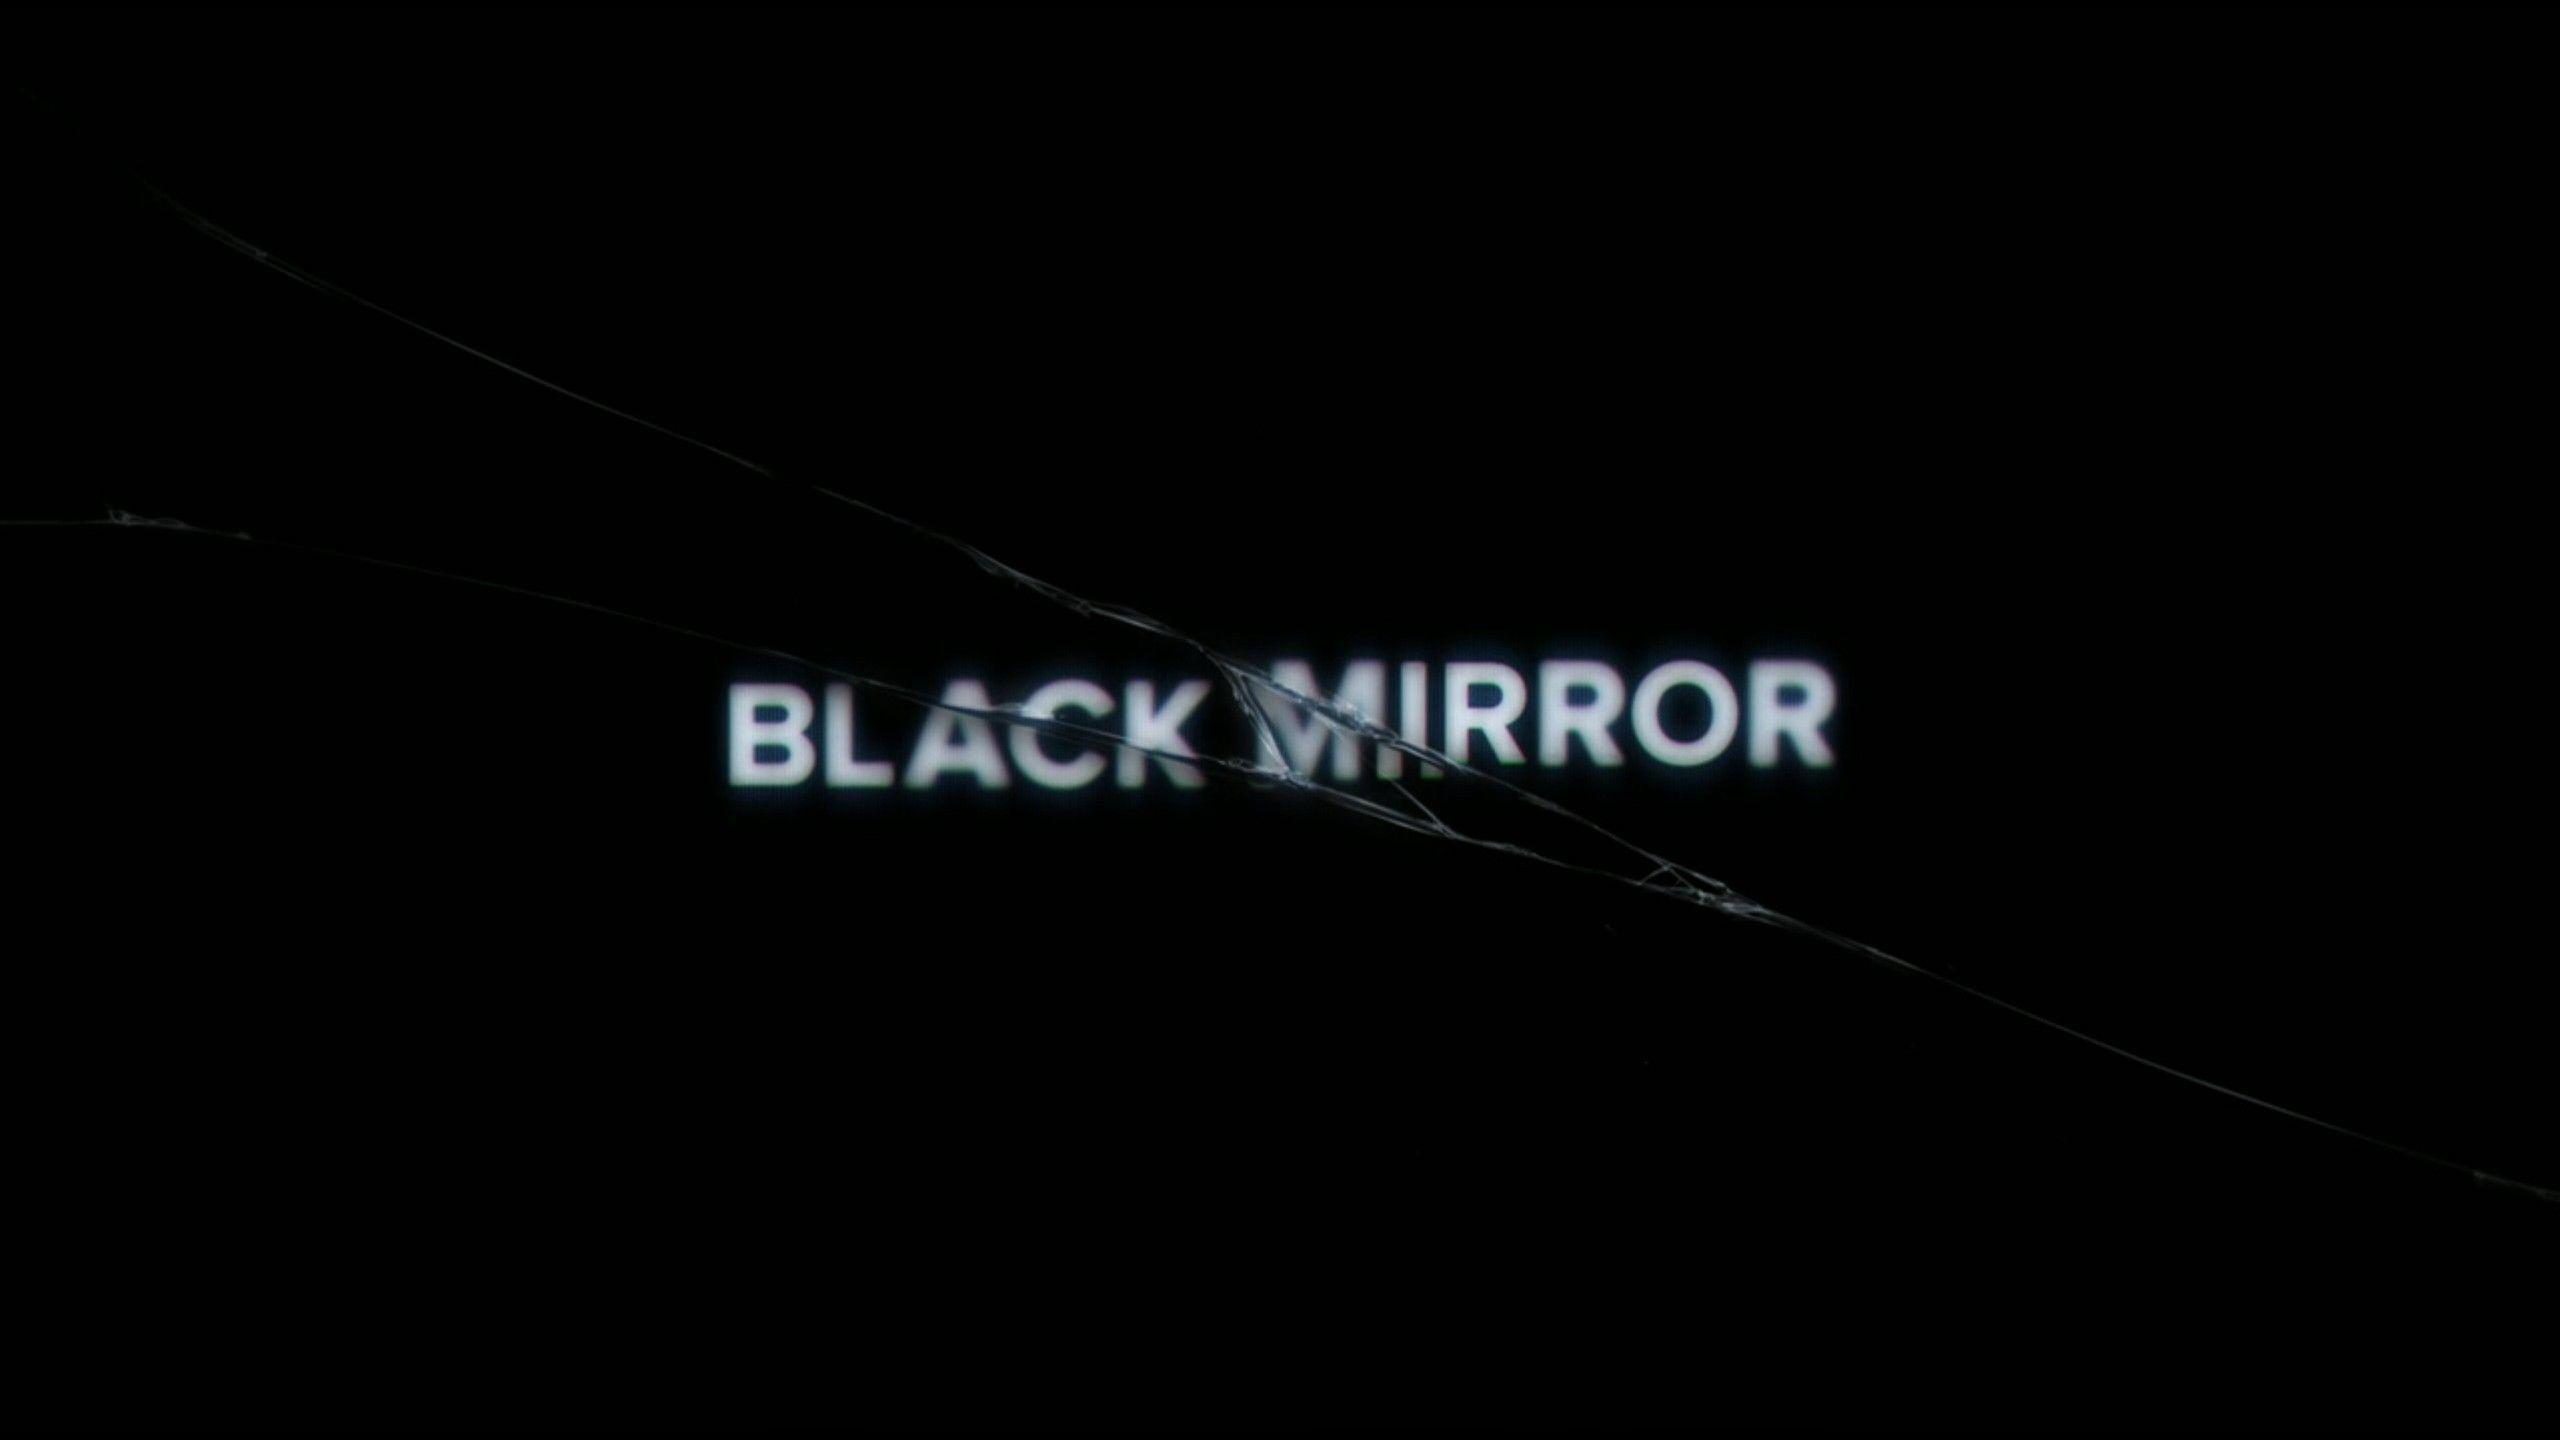 Black Mirror Wallpapers Wallpaper Cave